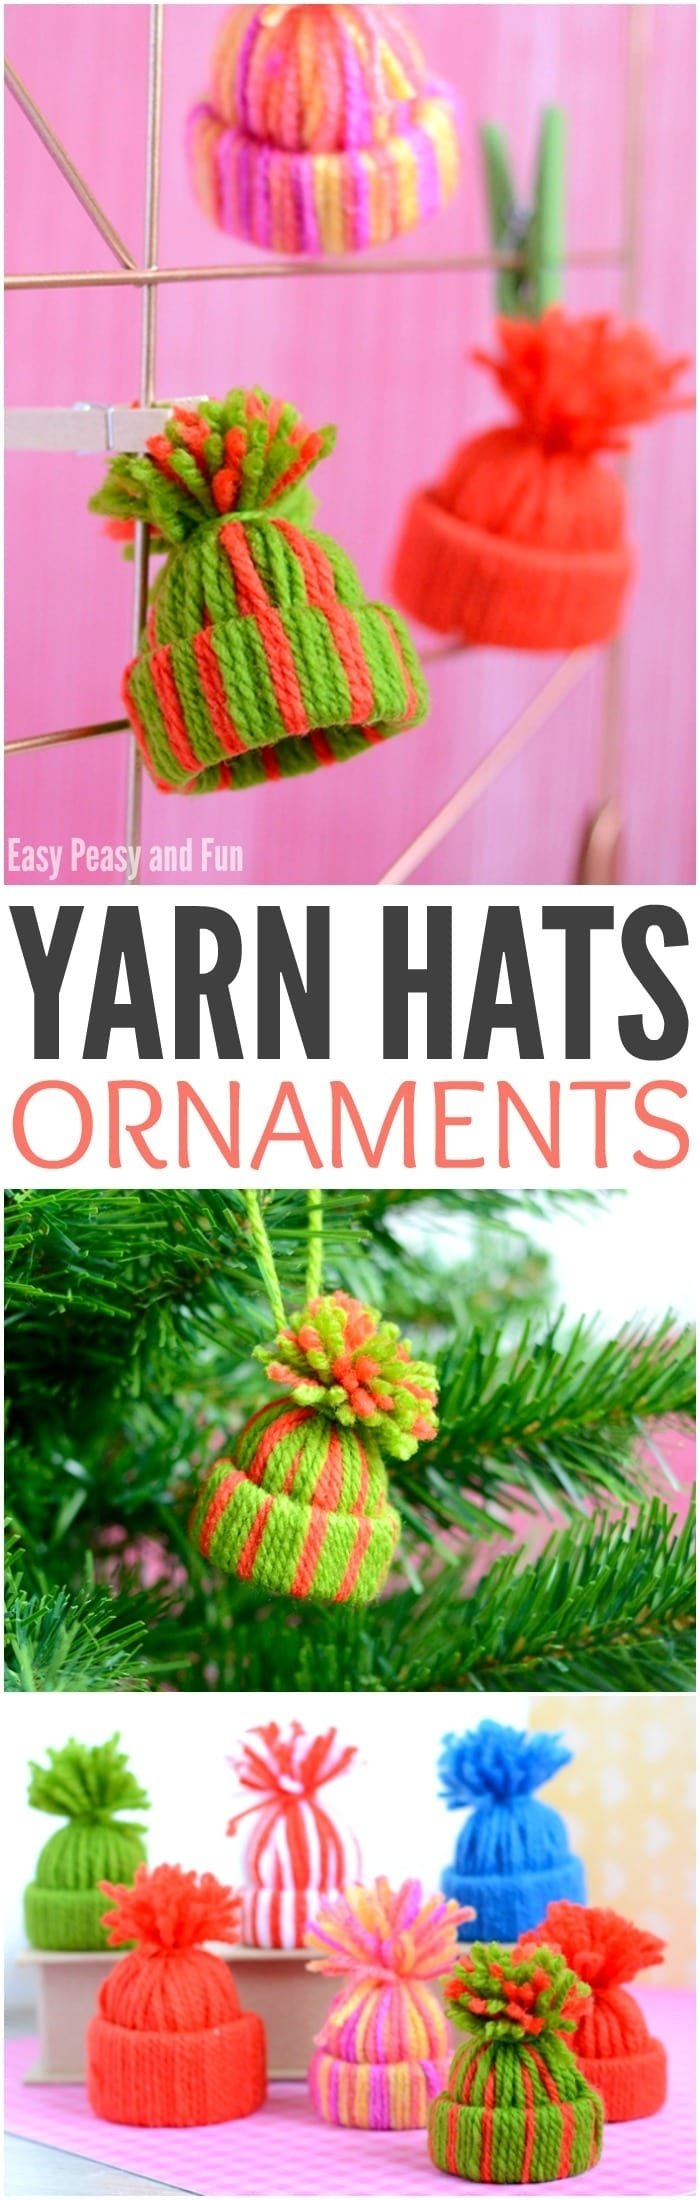 10 Most Popular Homemade Christmas Ornament Ideas For Kids mini yarn hats ornaments diy christmas ornaments easy peasy and fun 2020